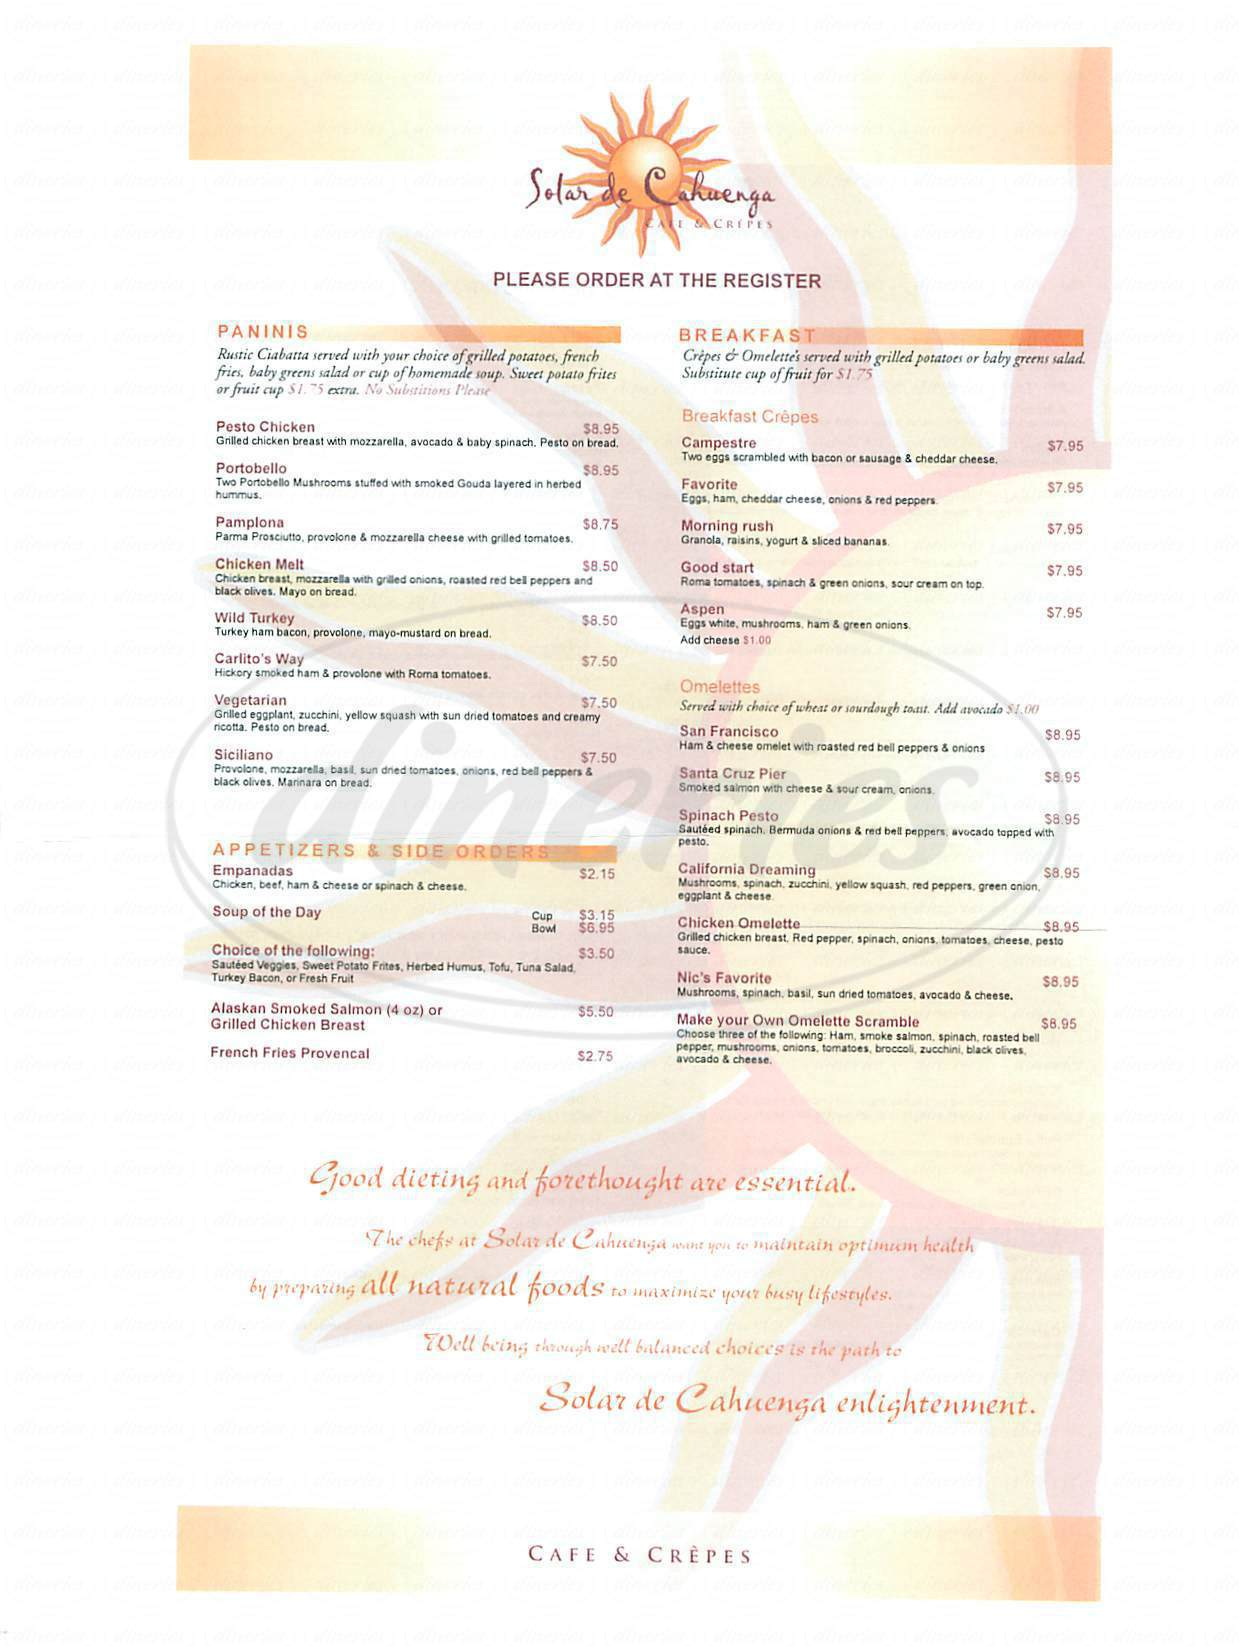 menu for Solar de Cahuenga